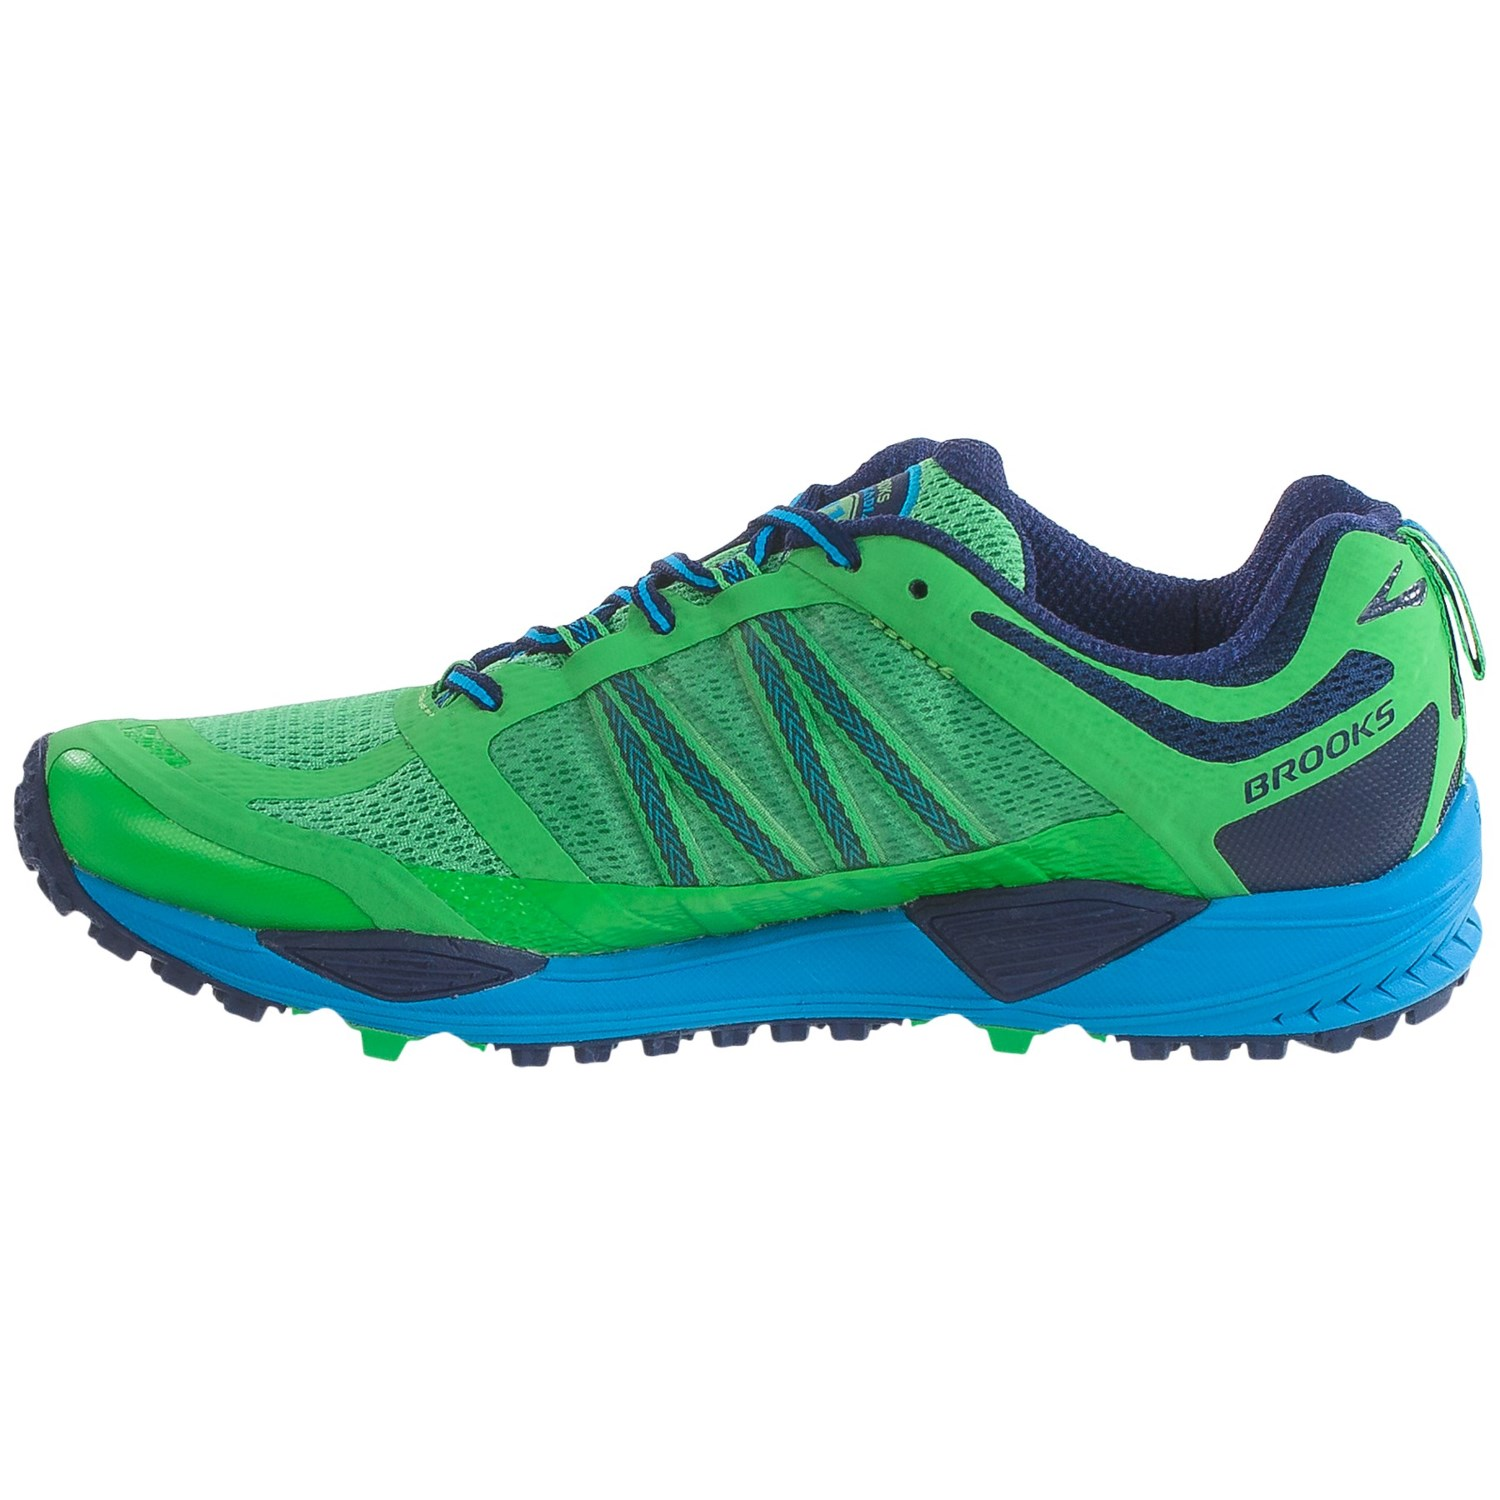 Are Brooks Good Running Shoes